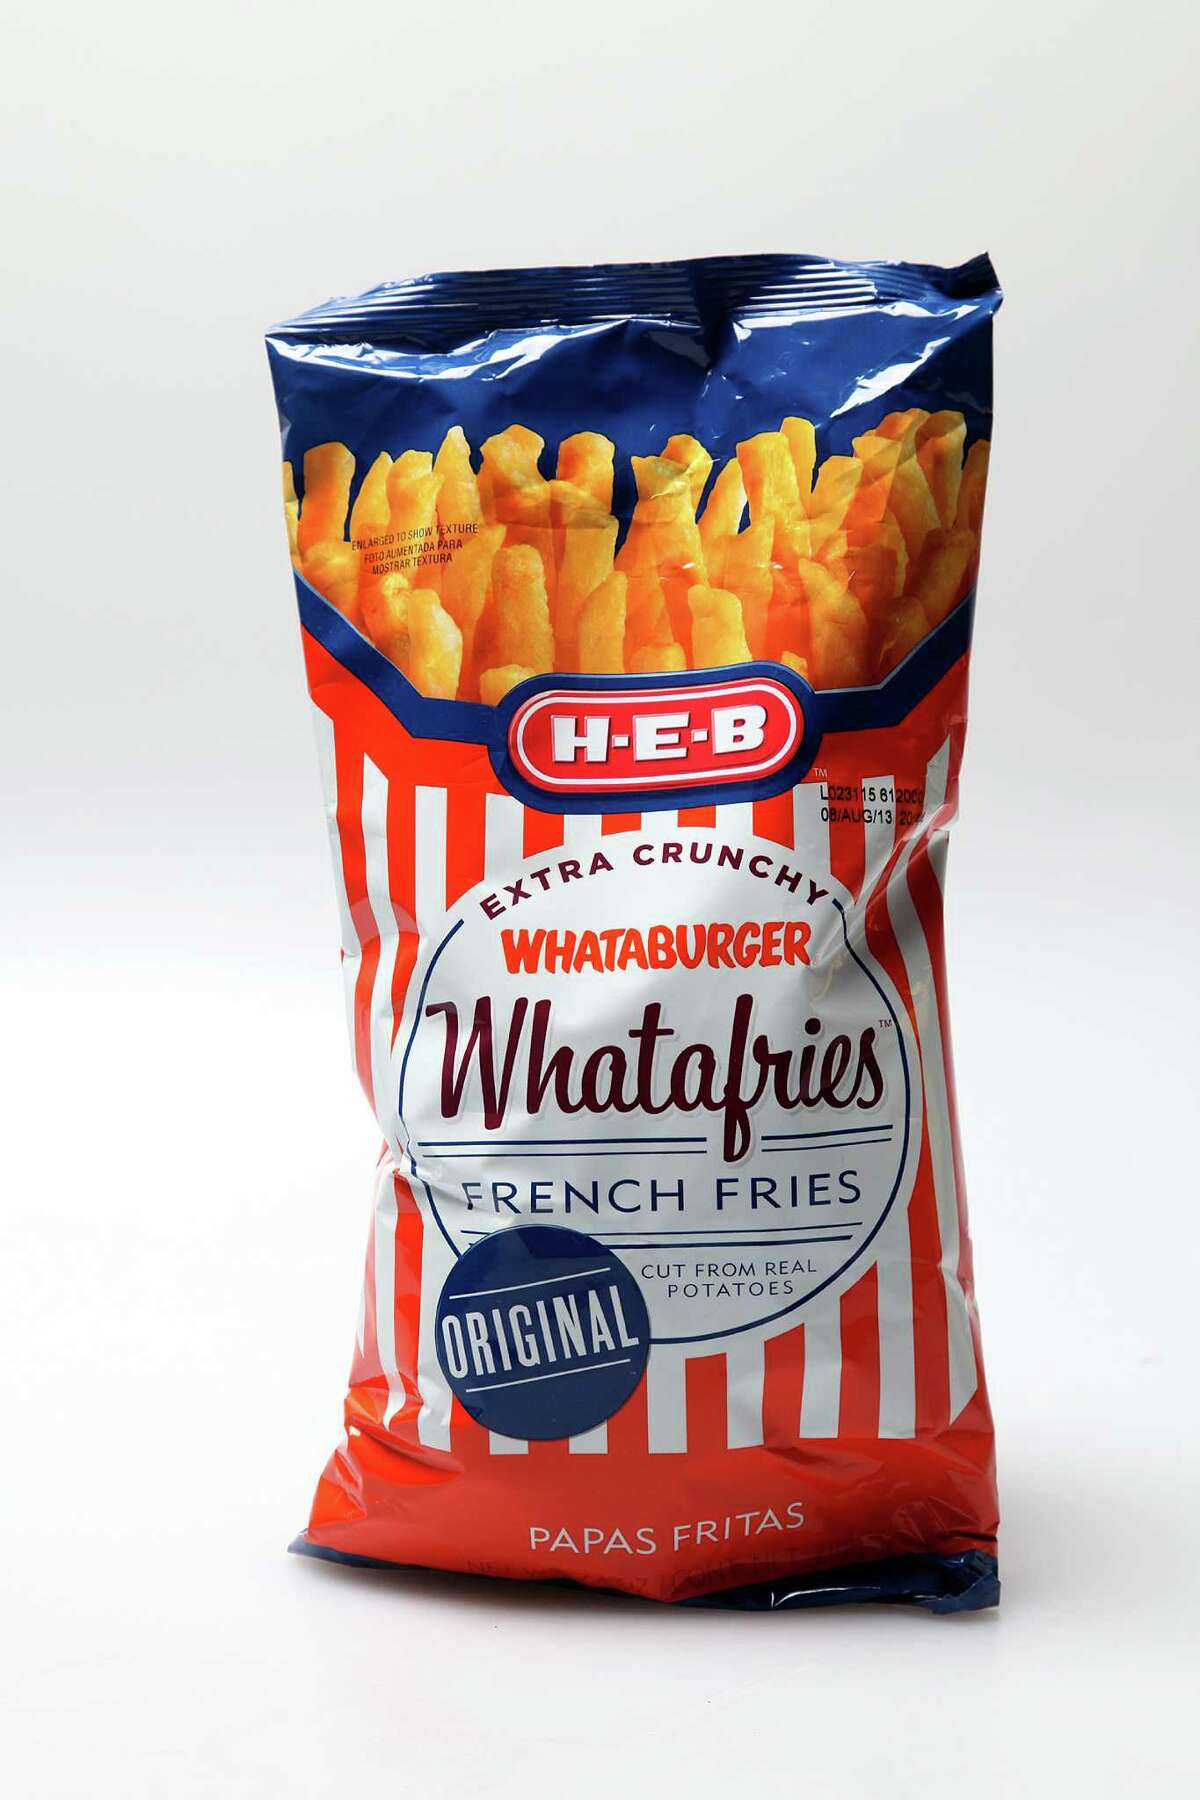 Whataburger's Whatafries and other Texas brands that previously were available only in H-E-B stores are among the 50,000 products available for shipment.